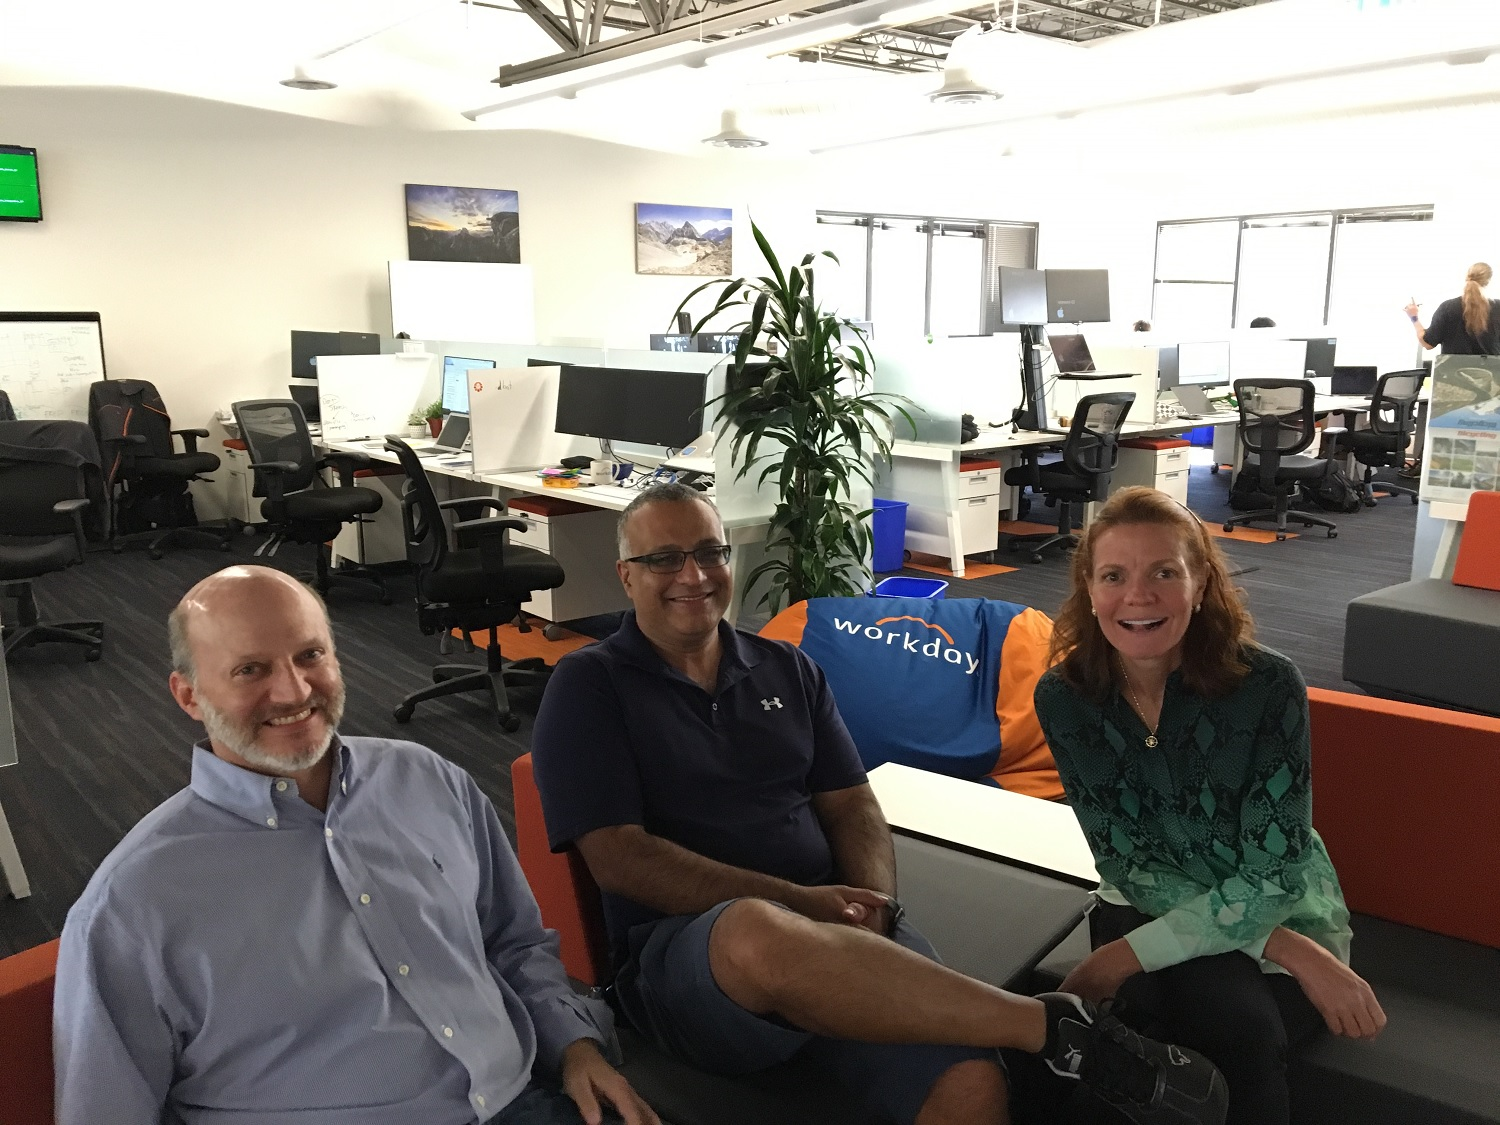 From left, GridCraft cofounder and chief technology officer and Workday fellow Terry Olkin, GridCraft cofounder and chief operating officer and Workday vice president of software development Sayan Chakraborty, and GridCraft cofounder and chief executive and Workday vice president of corporate strategy Lisa Reeves.